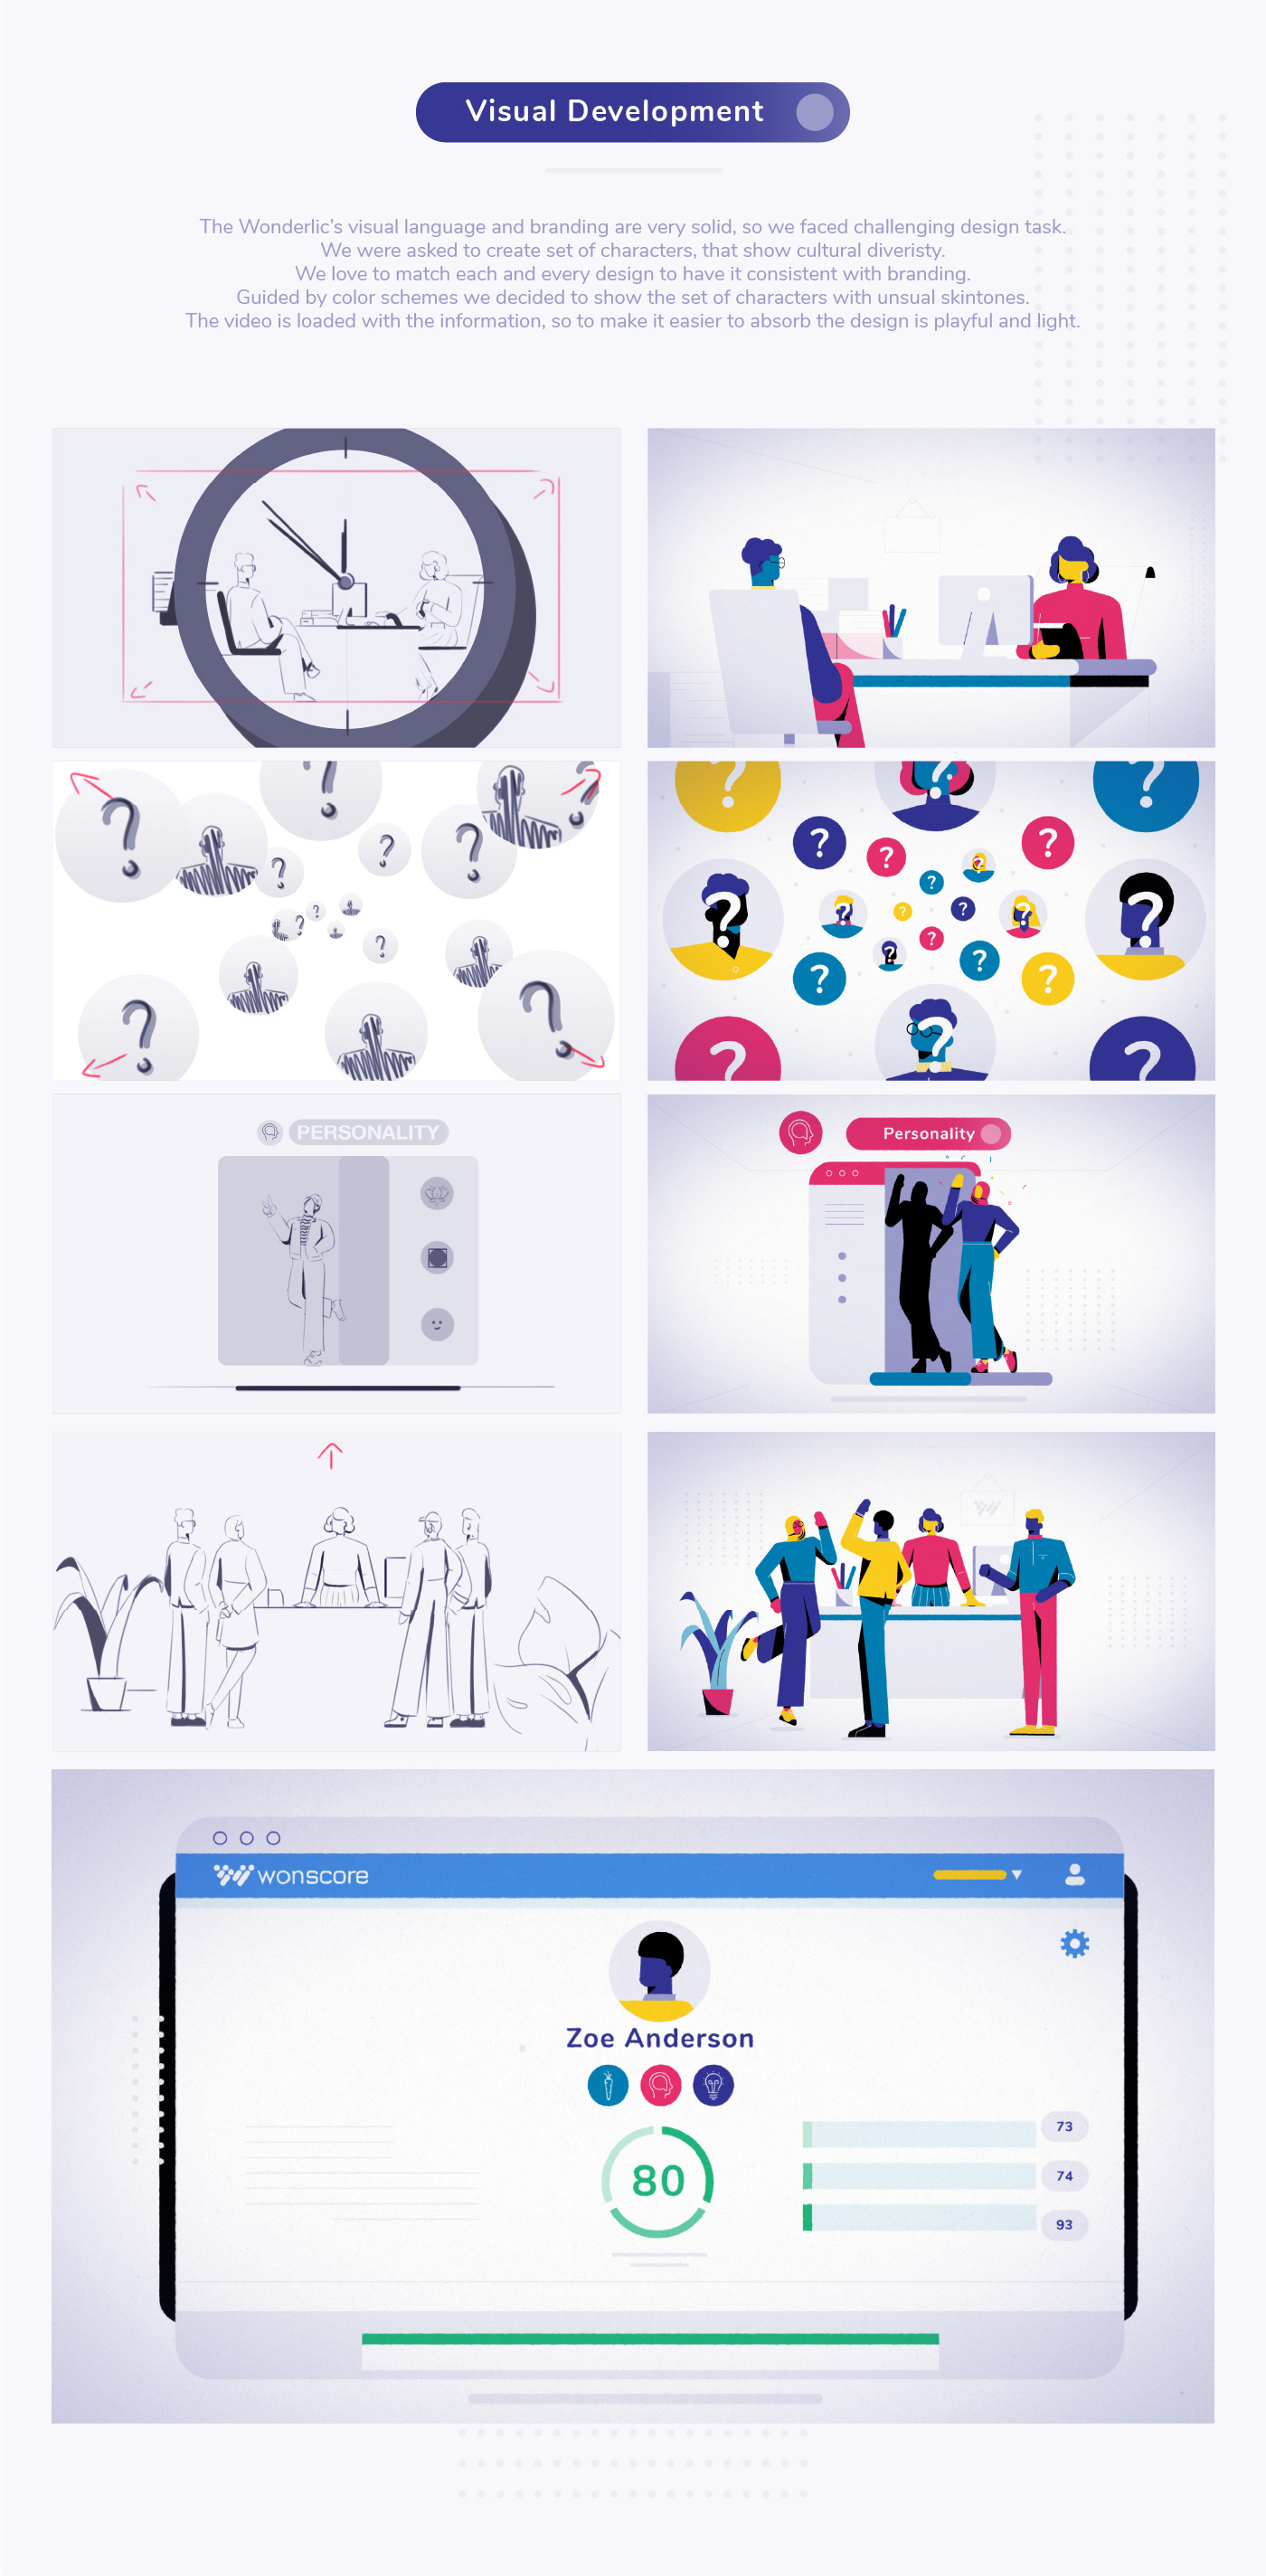 animated interface animation  Character design  employee hiring HR Human Resources Office vivid workplace